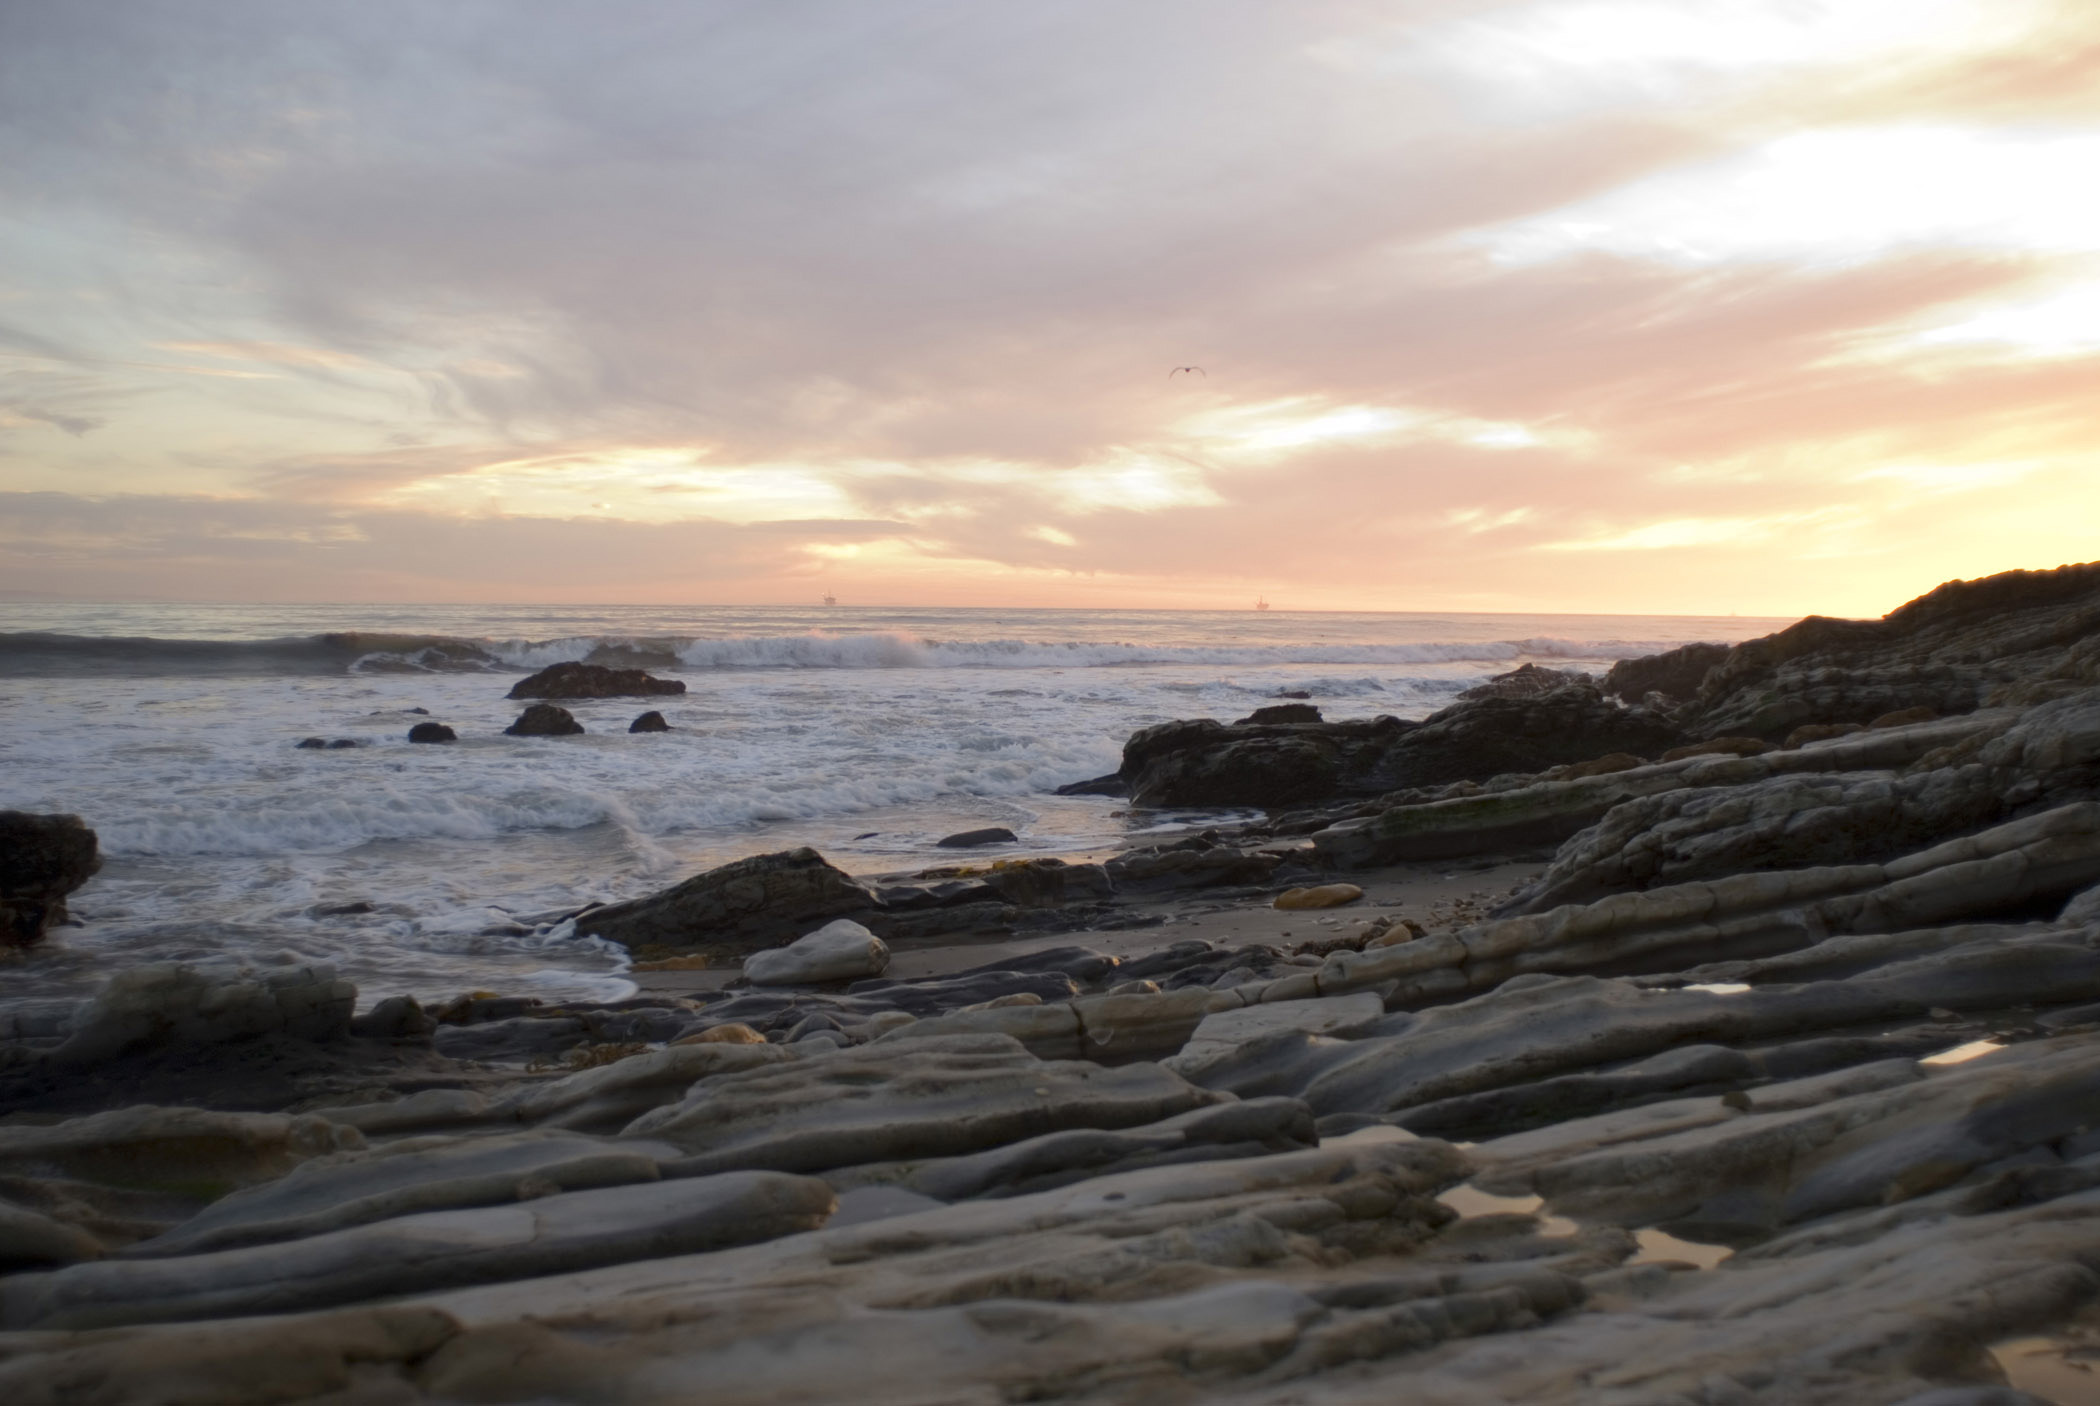 Sunset at Beautiful Refugio Beach with Rocks at the Seashore, Located in California.